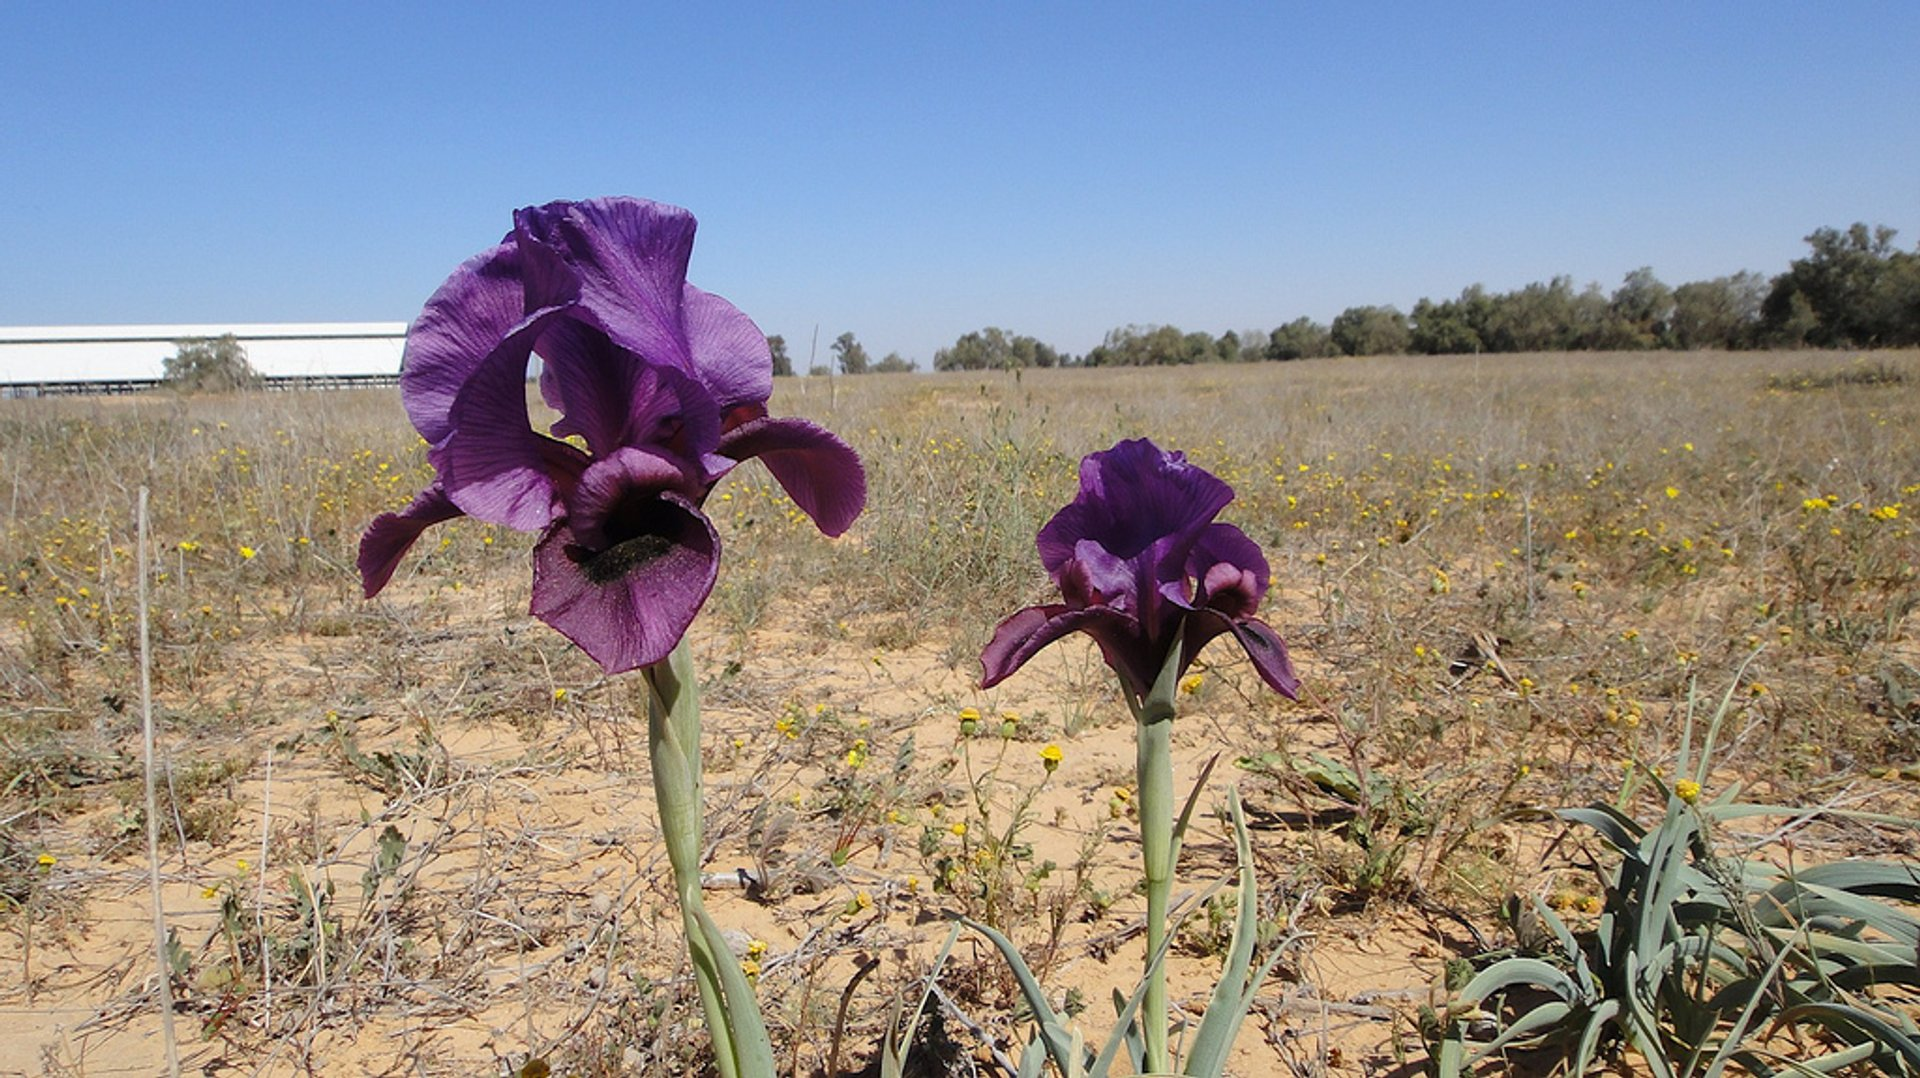 Negev Iris in Bloom in Israel - Best Season 2020